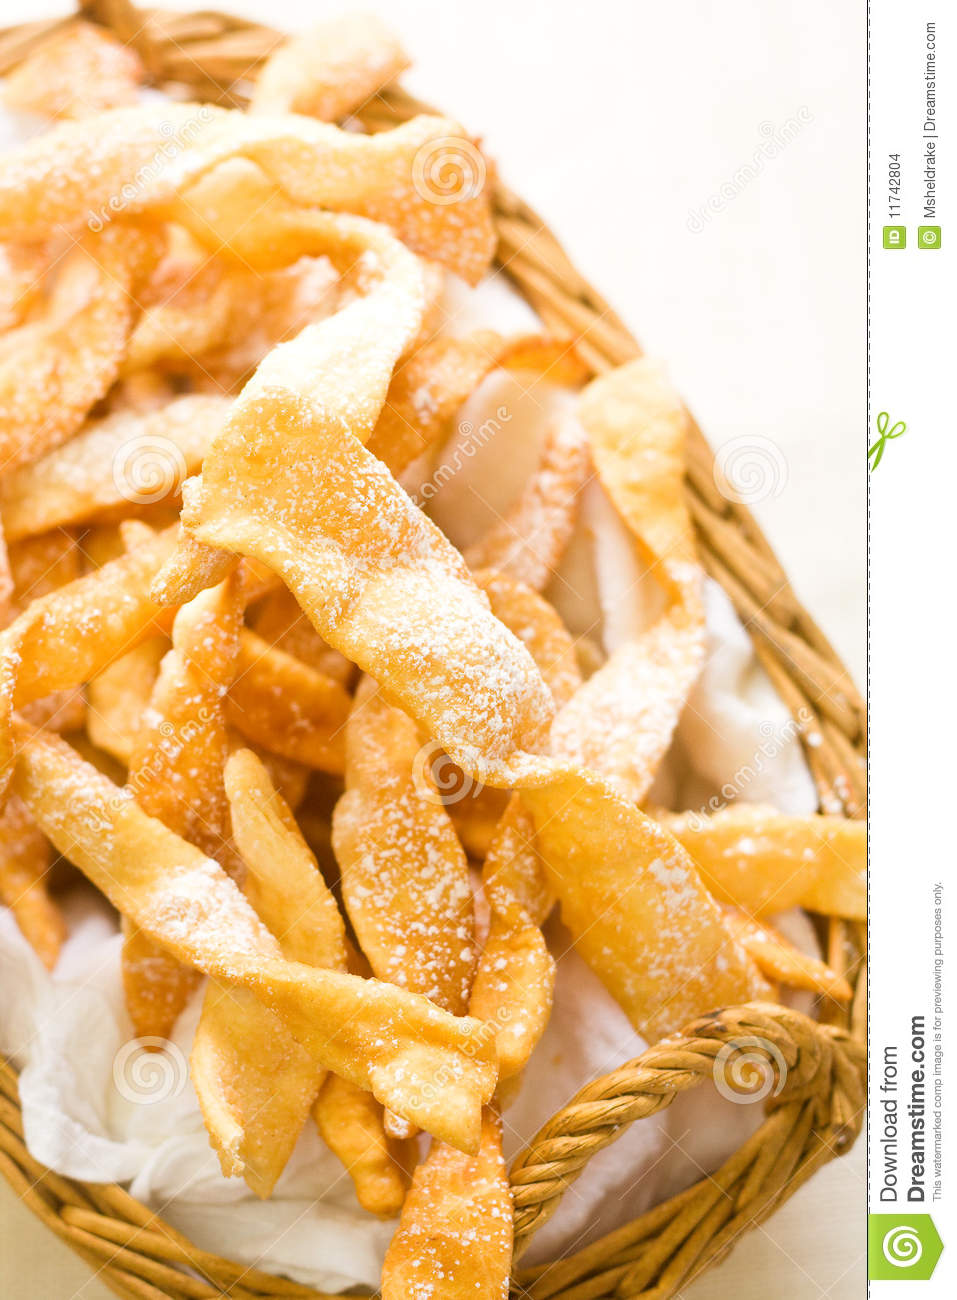 Twist Cookies Stock Images - Image: 11742804